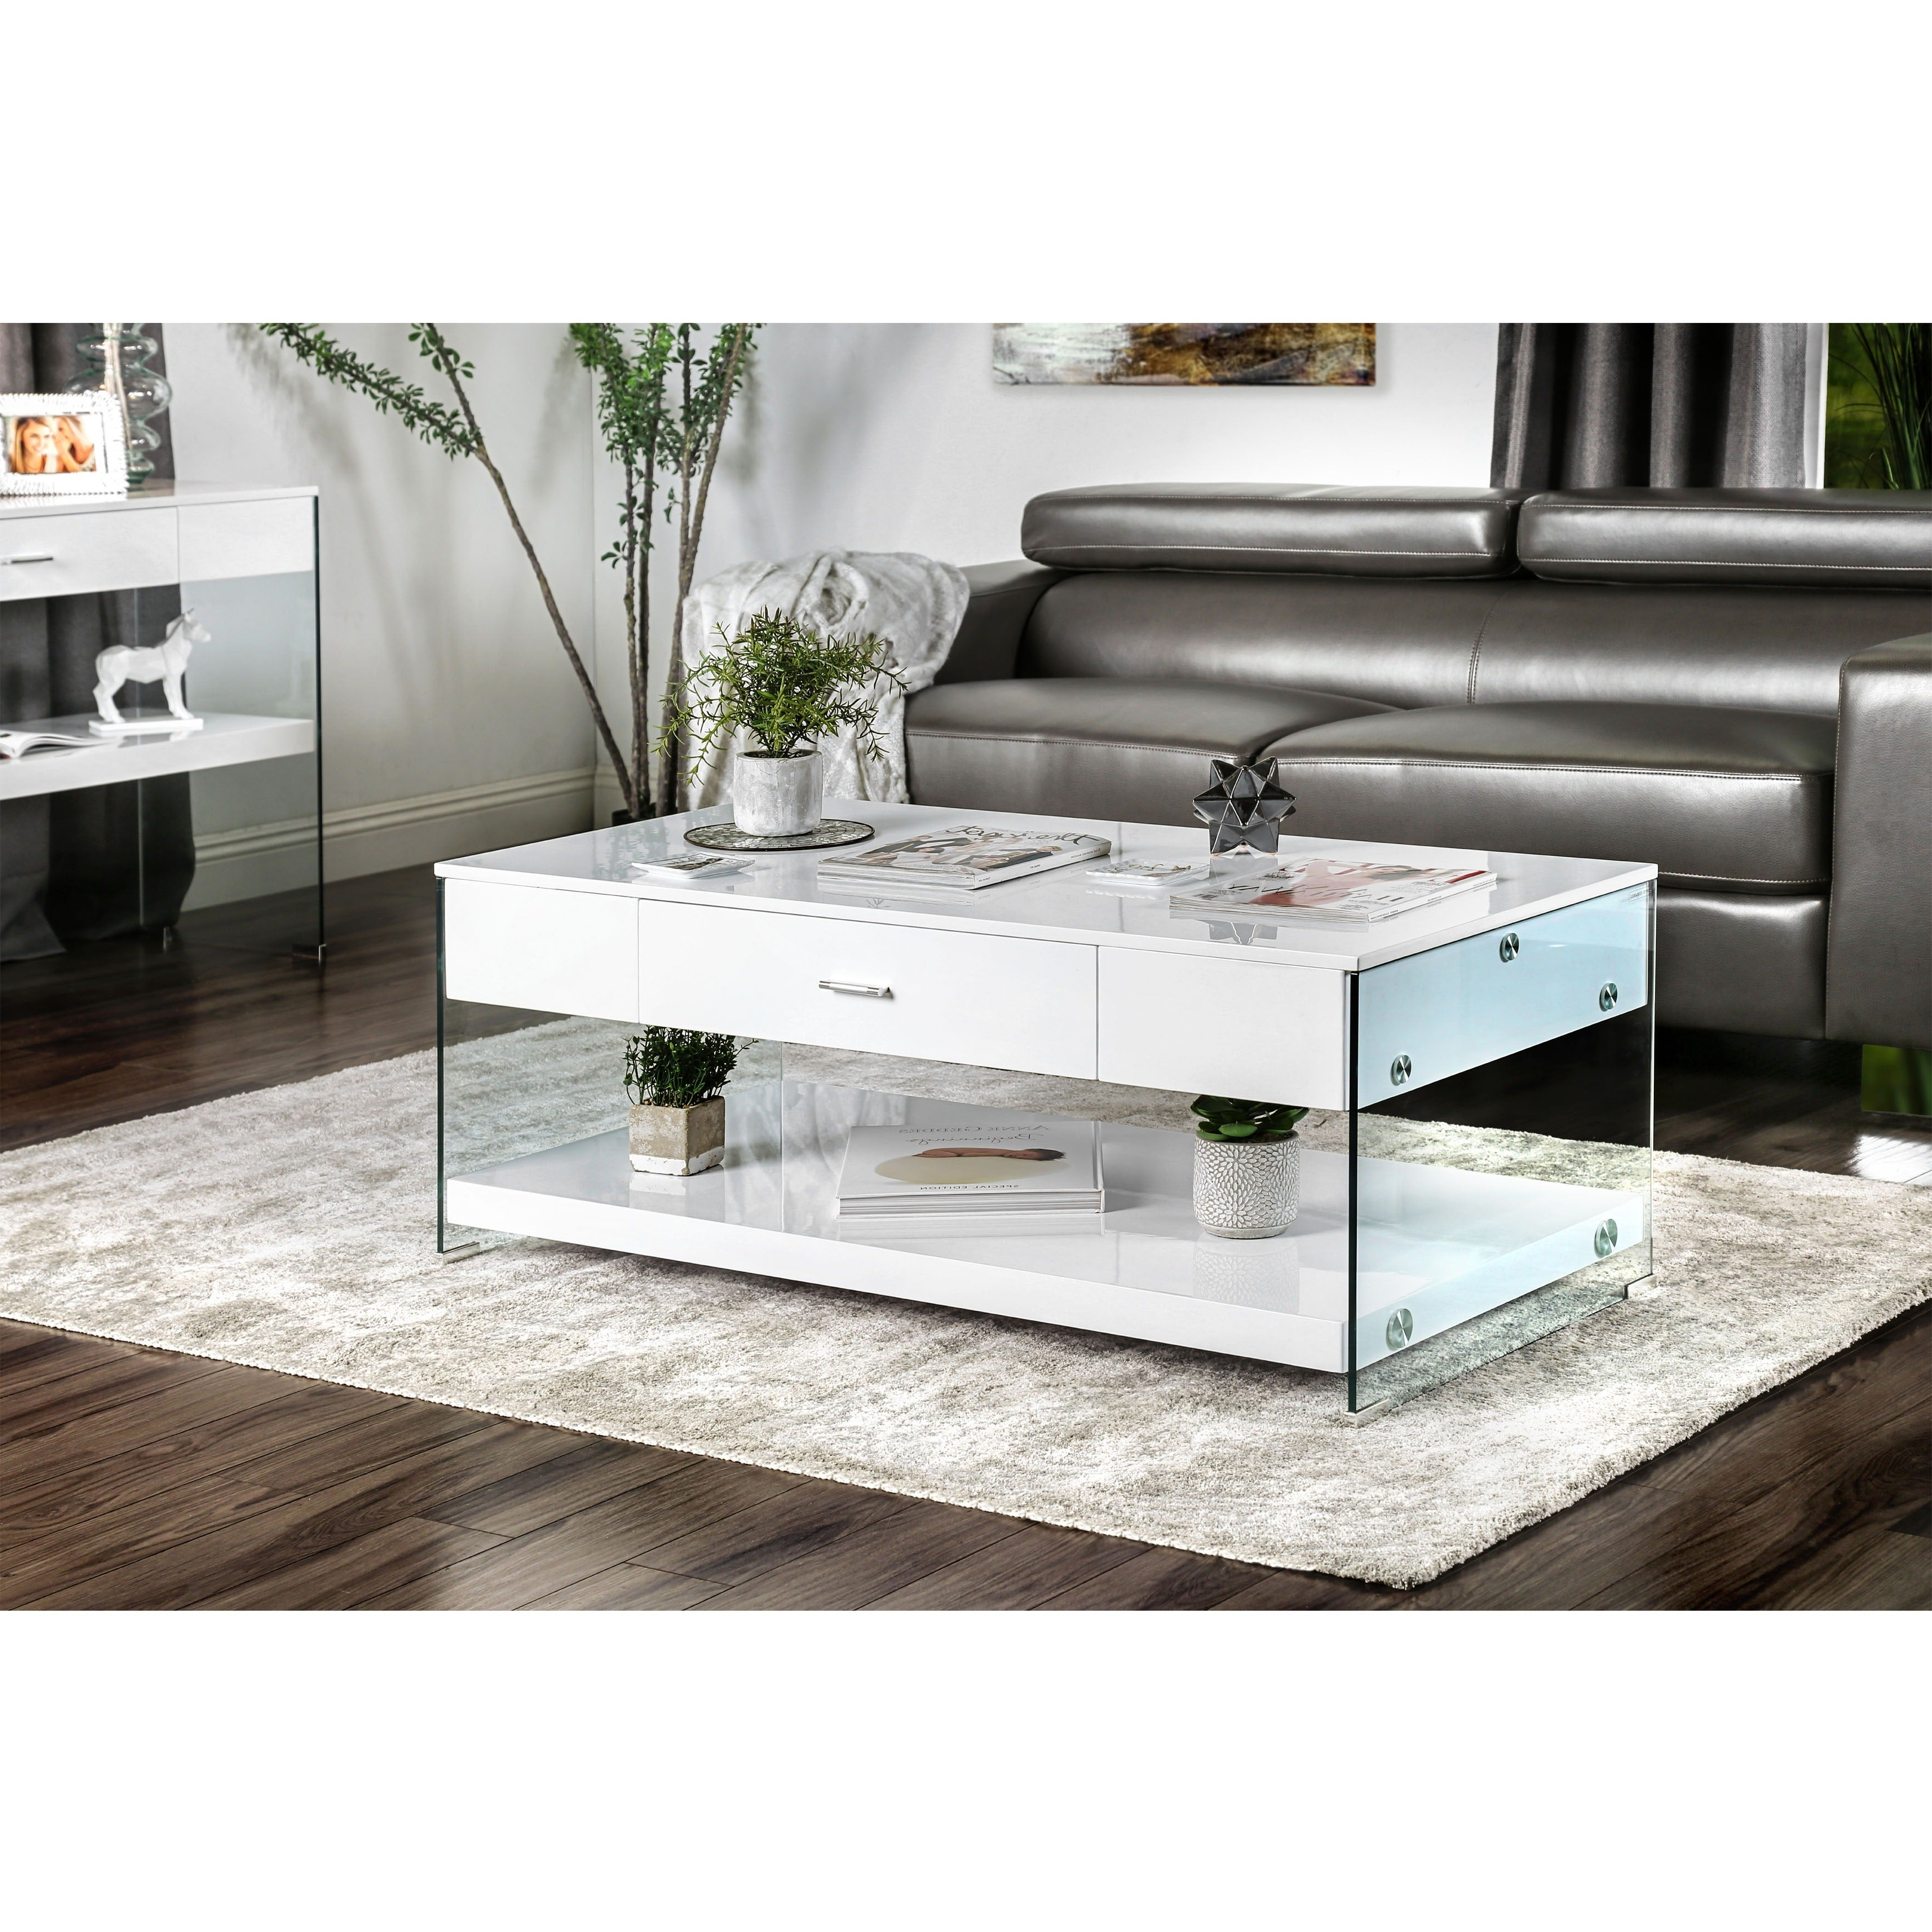 Details About Strick & Bolton Markus Contemporary Glass Coffee Table Regarding Well Liked Strick & Bolton Florence Chrome Coffee Tables (View 8 of 20)